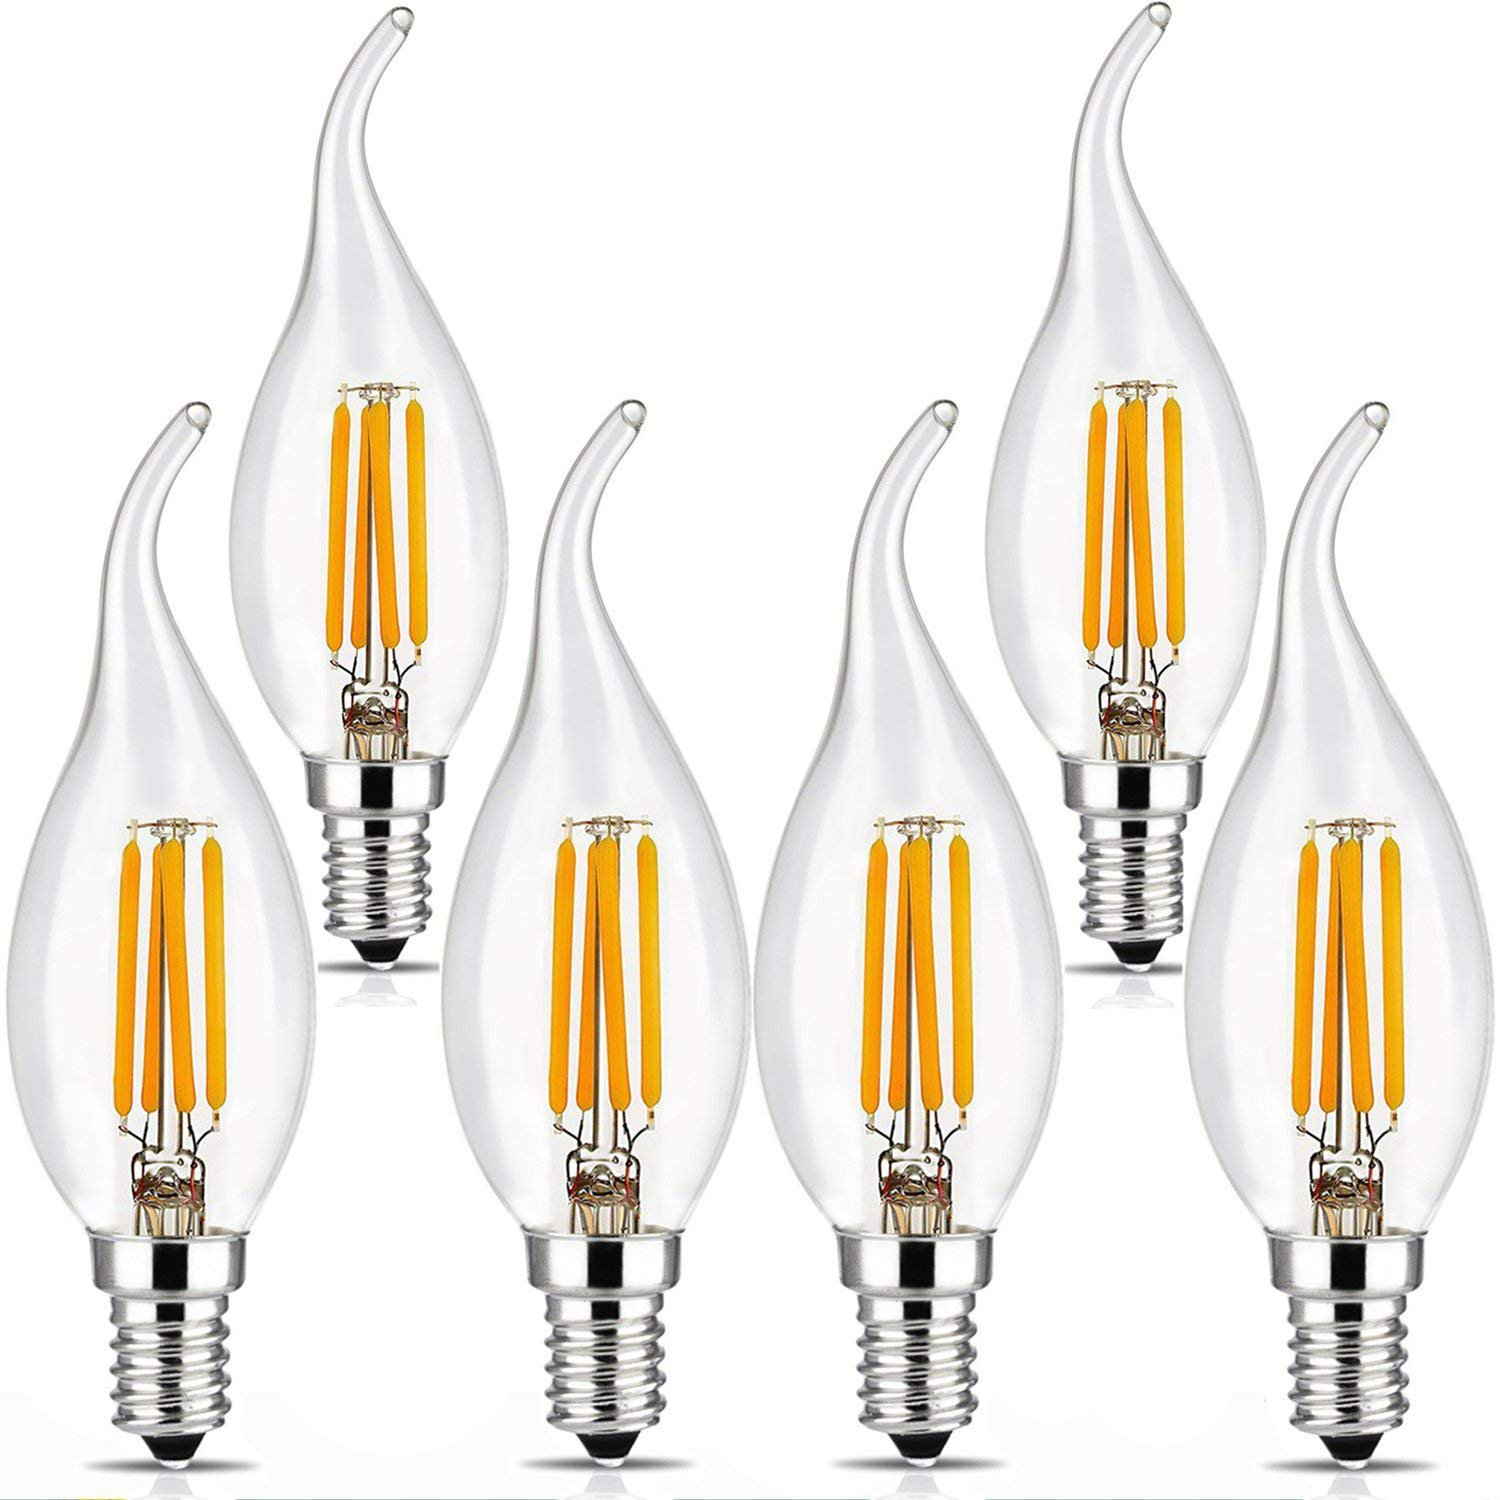 BRIMAX 4W Chandelier Light Bulbs, 40W LED Candelabra Bulb, E12 Candle Bulb for Small Base, Bent Tip, 2700K Warm White, for Chandelier Candle Lamp Decorative, Indoor & Outdoor,UL Listed-6Pack